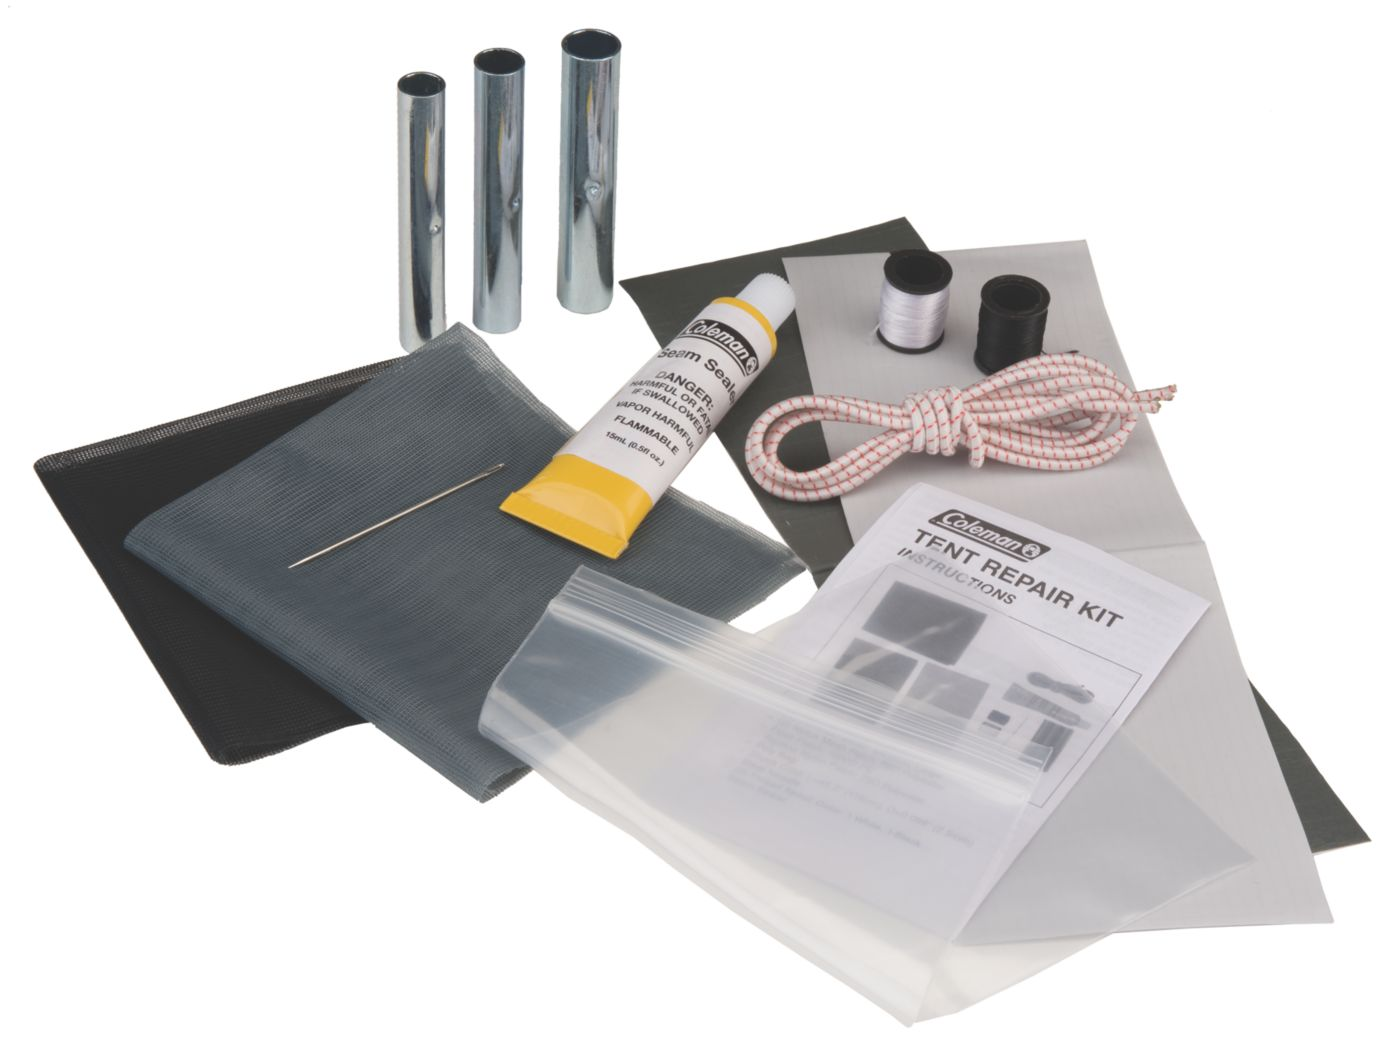 Tent Repair Kit  sc 1 st  Coleman & Camping Accessories | Tent Repair Kit | Coleman